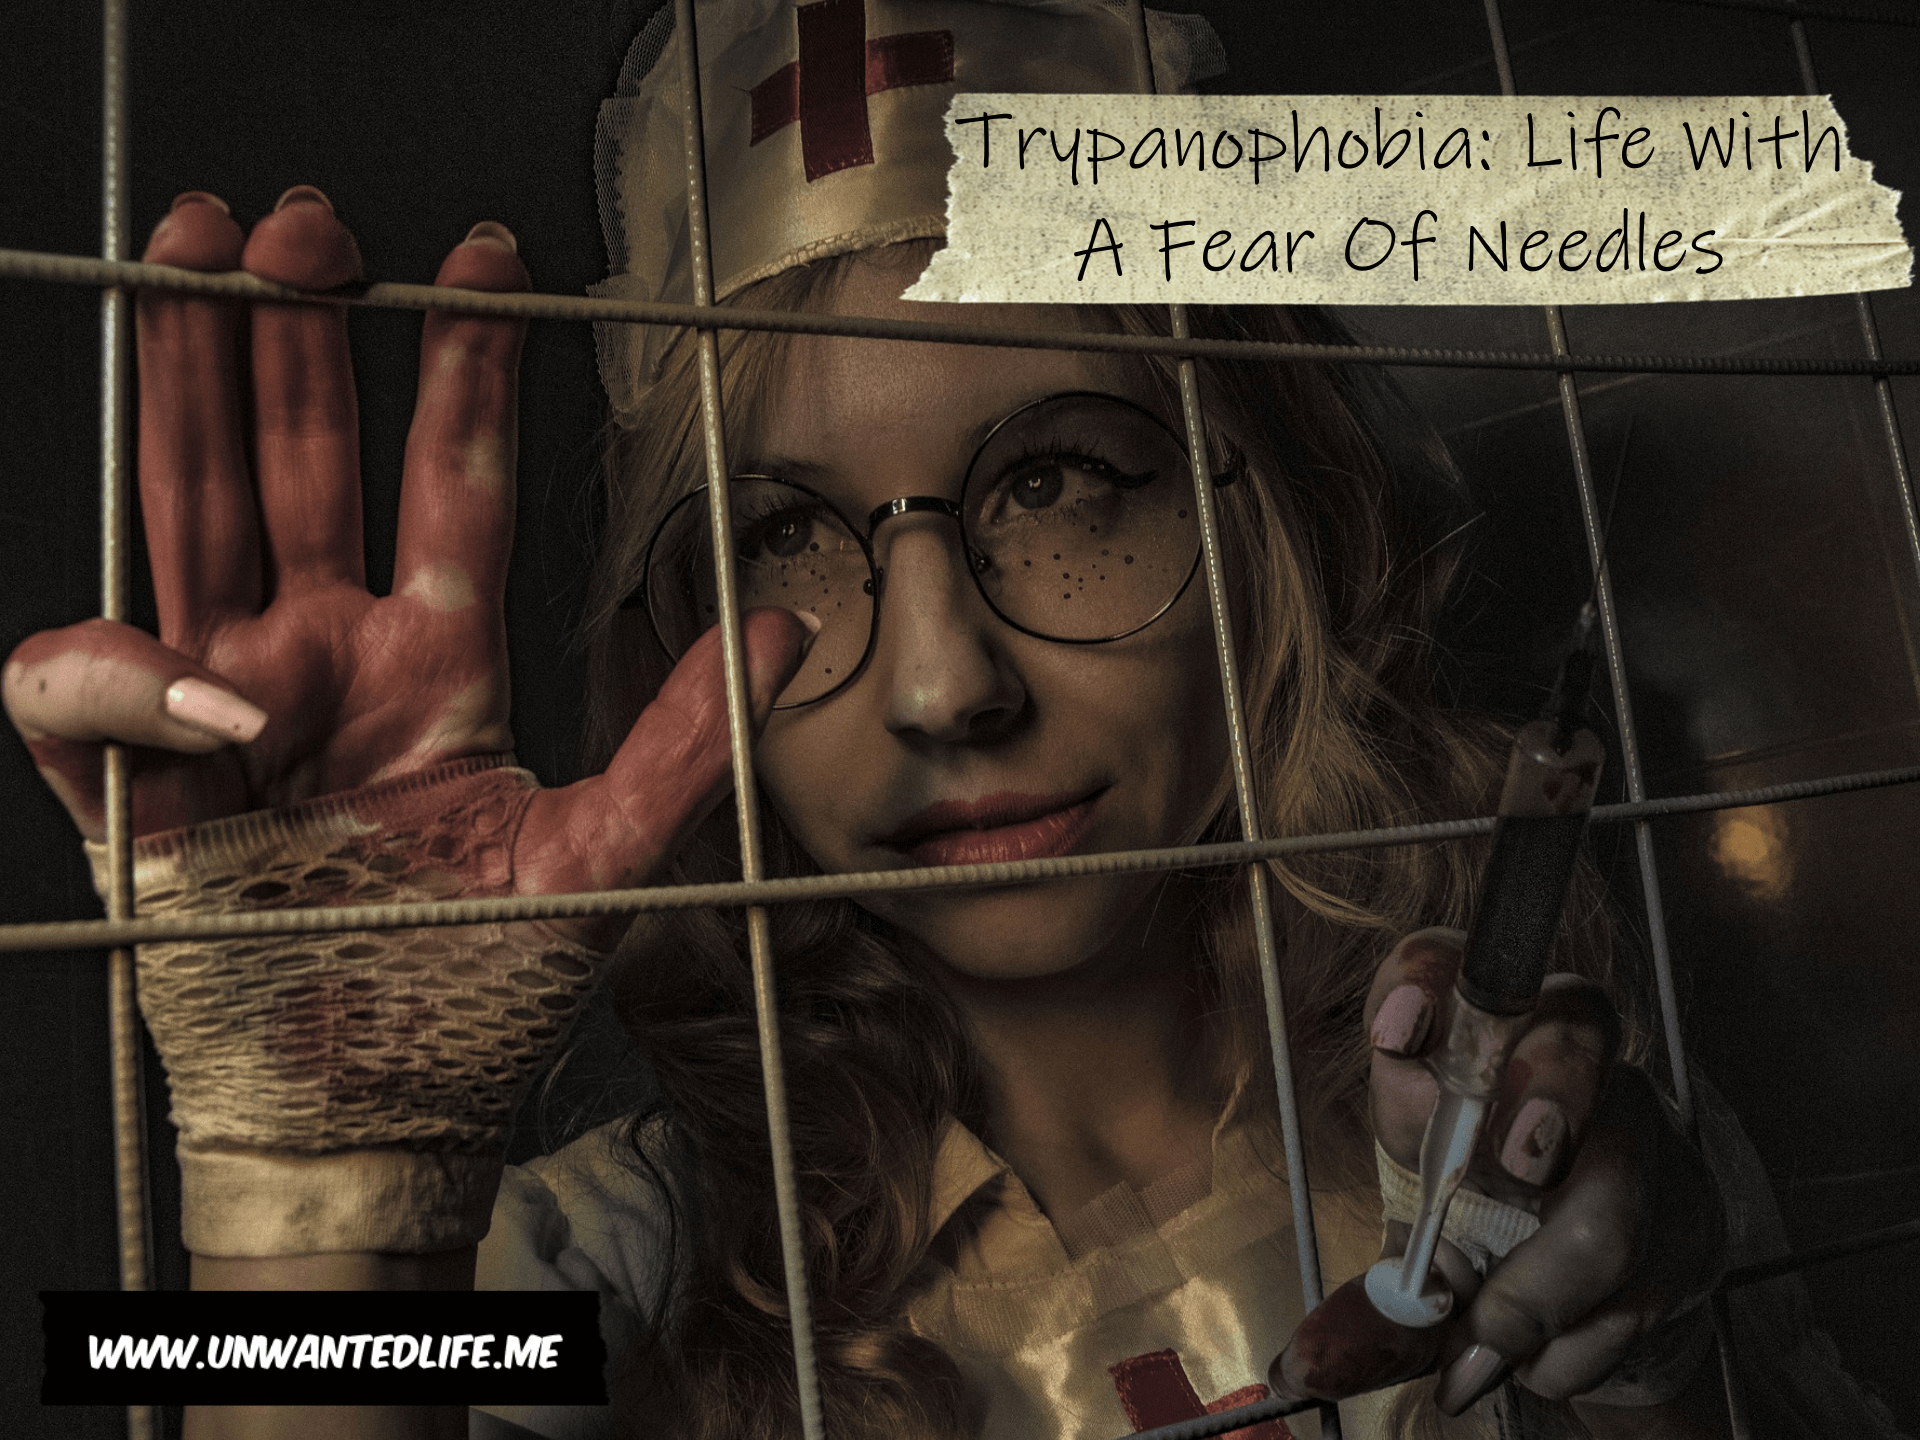 Trypanophobia: Life With A Fear Of Needles | Mental Health and Anxiety | Unwanted Life